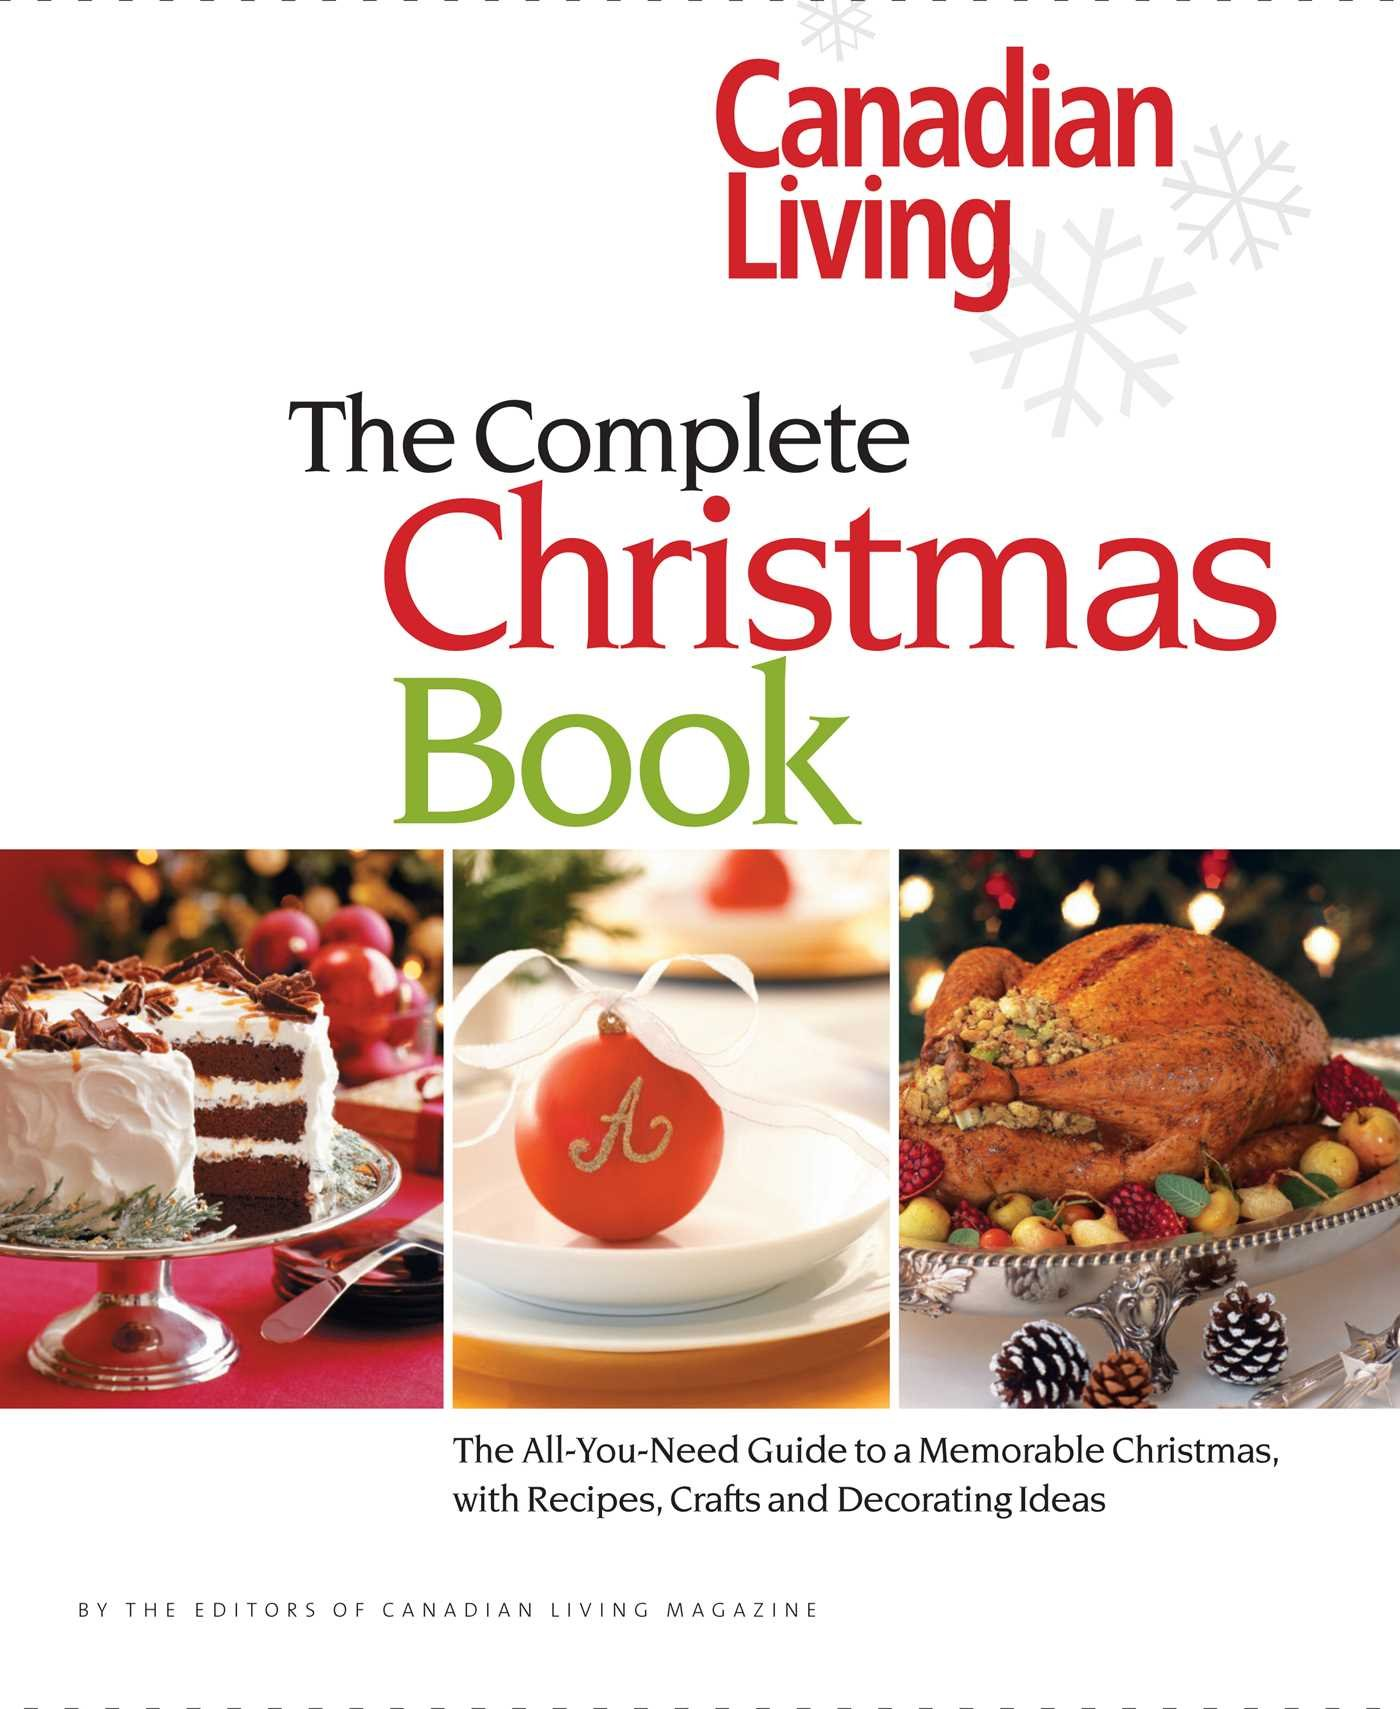 Canadian Living The Complete Christmas Book The All You Need Guide To A Memorable Christmas With Recipes Crafts And Decorating Ideas Canadian Living 9780973835571 Books Amazon Ca